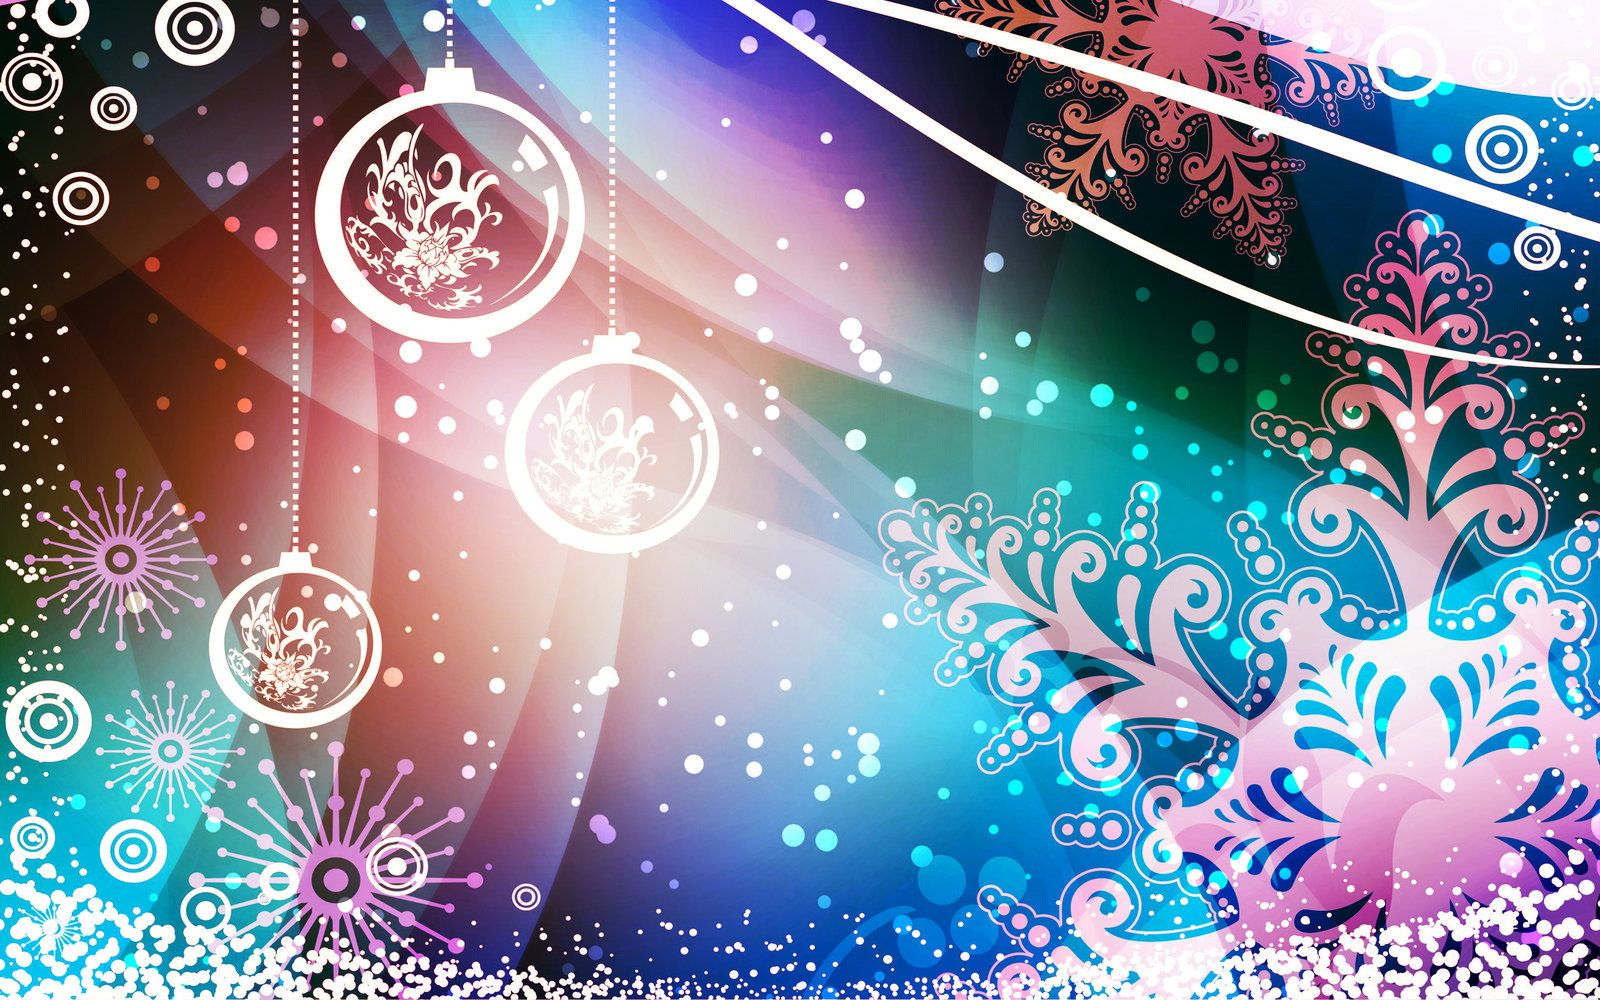 christmas wallpapers ce7 | hd wallpaper, blue wallpaper, abstract